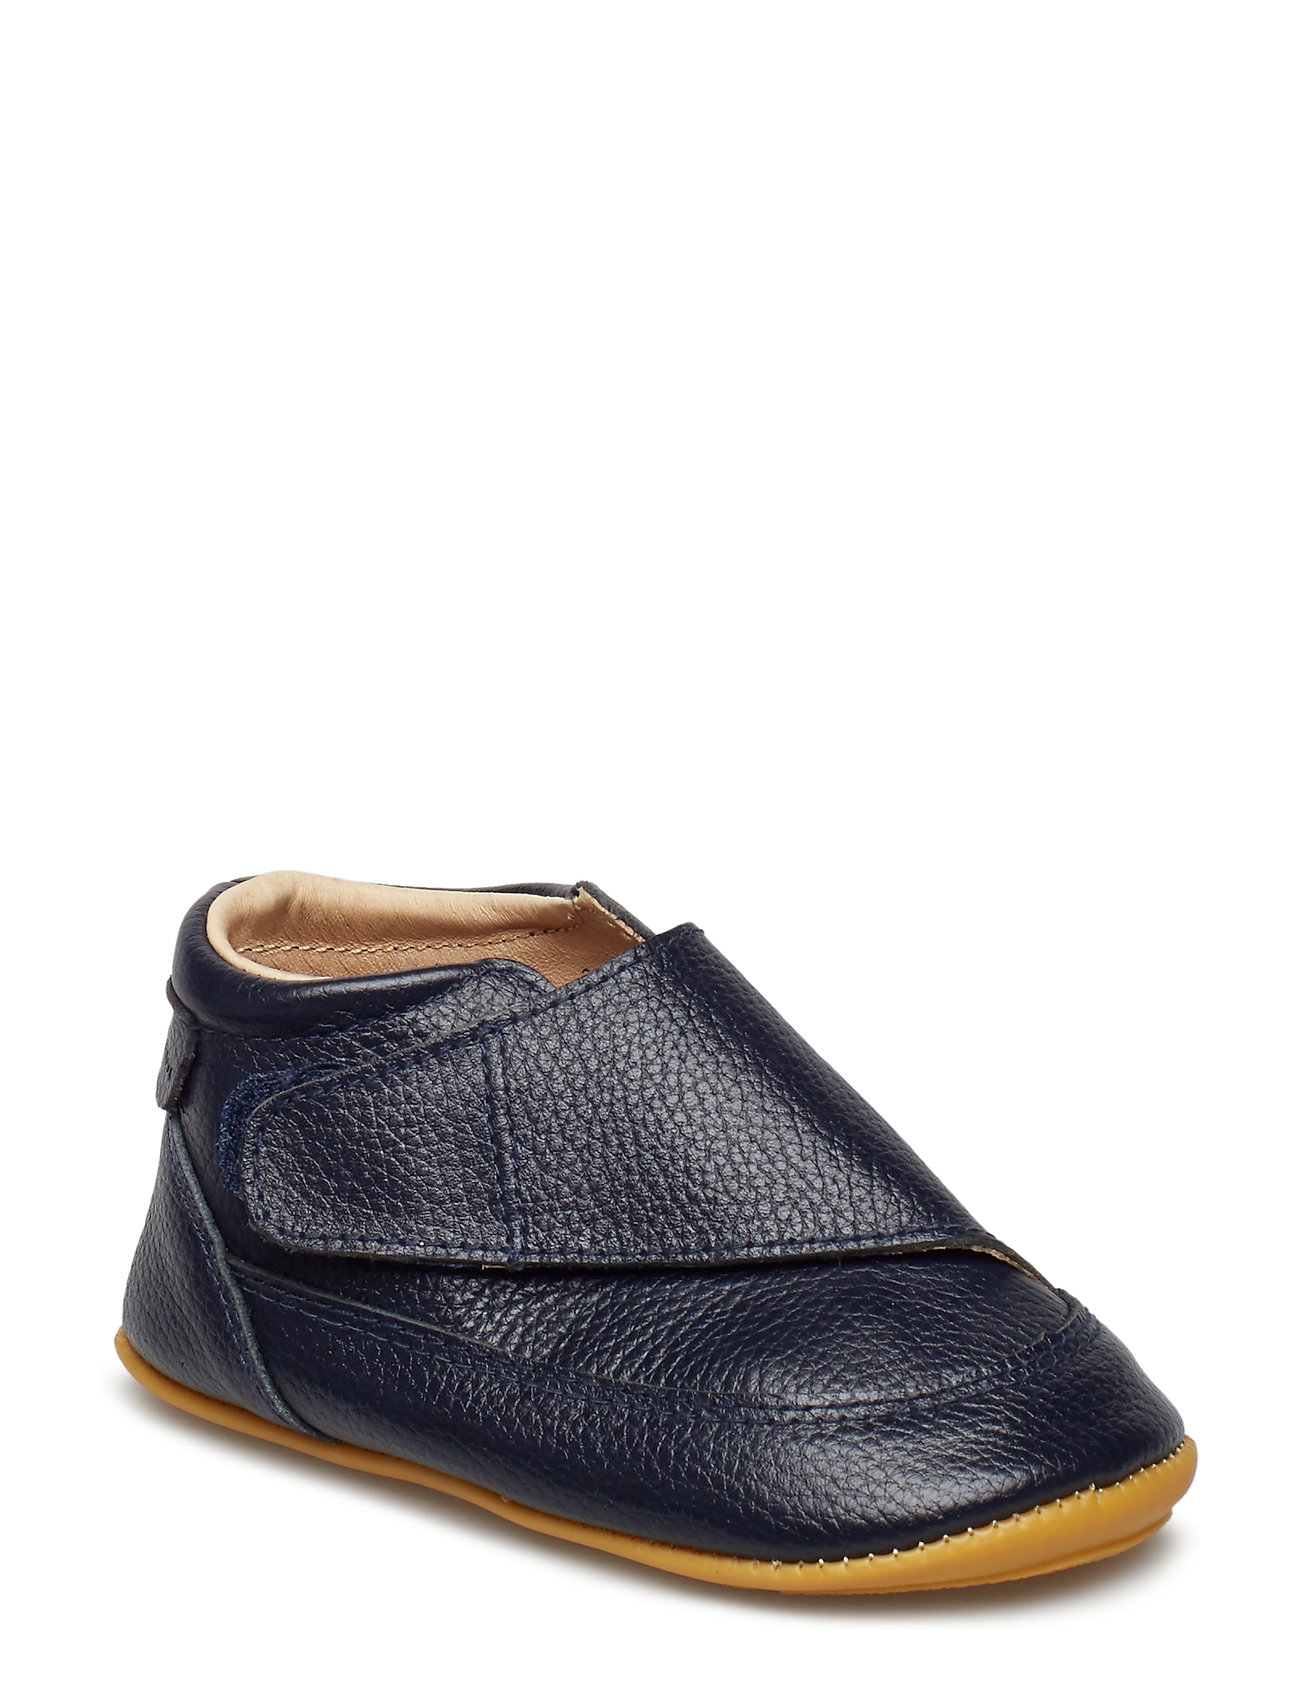 Move by Melton Prewalker Cross velcro - NAVY